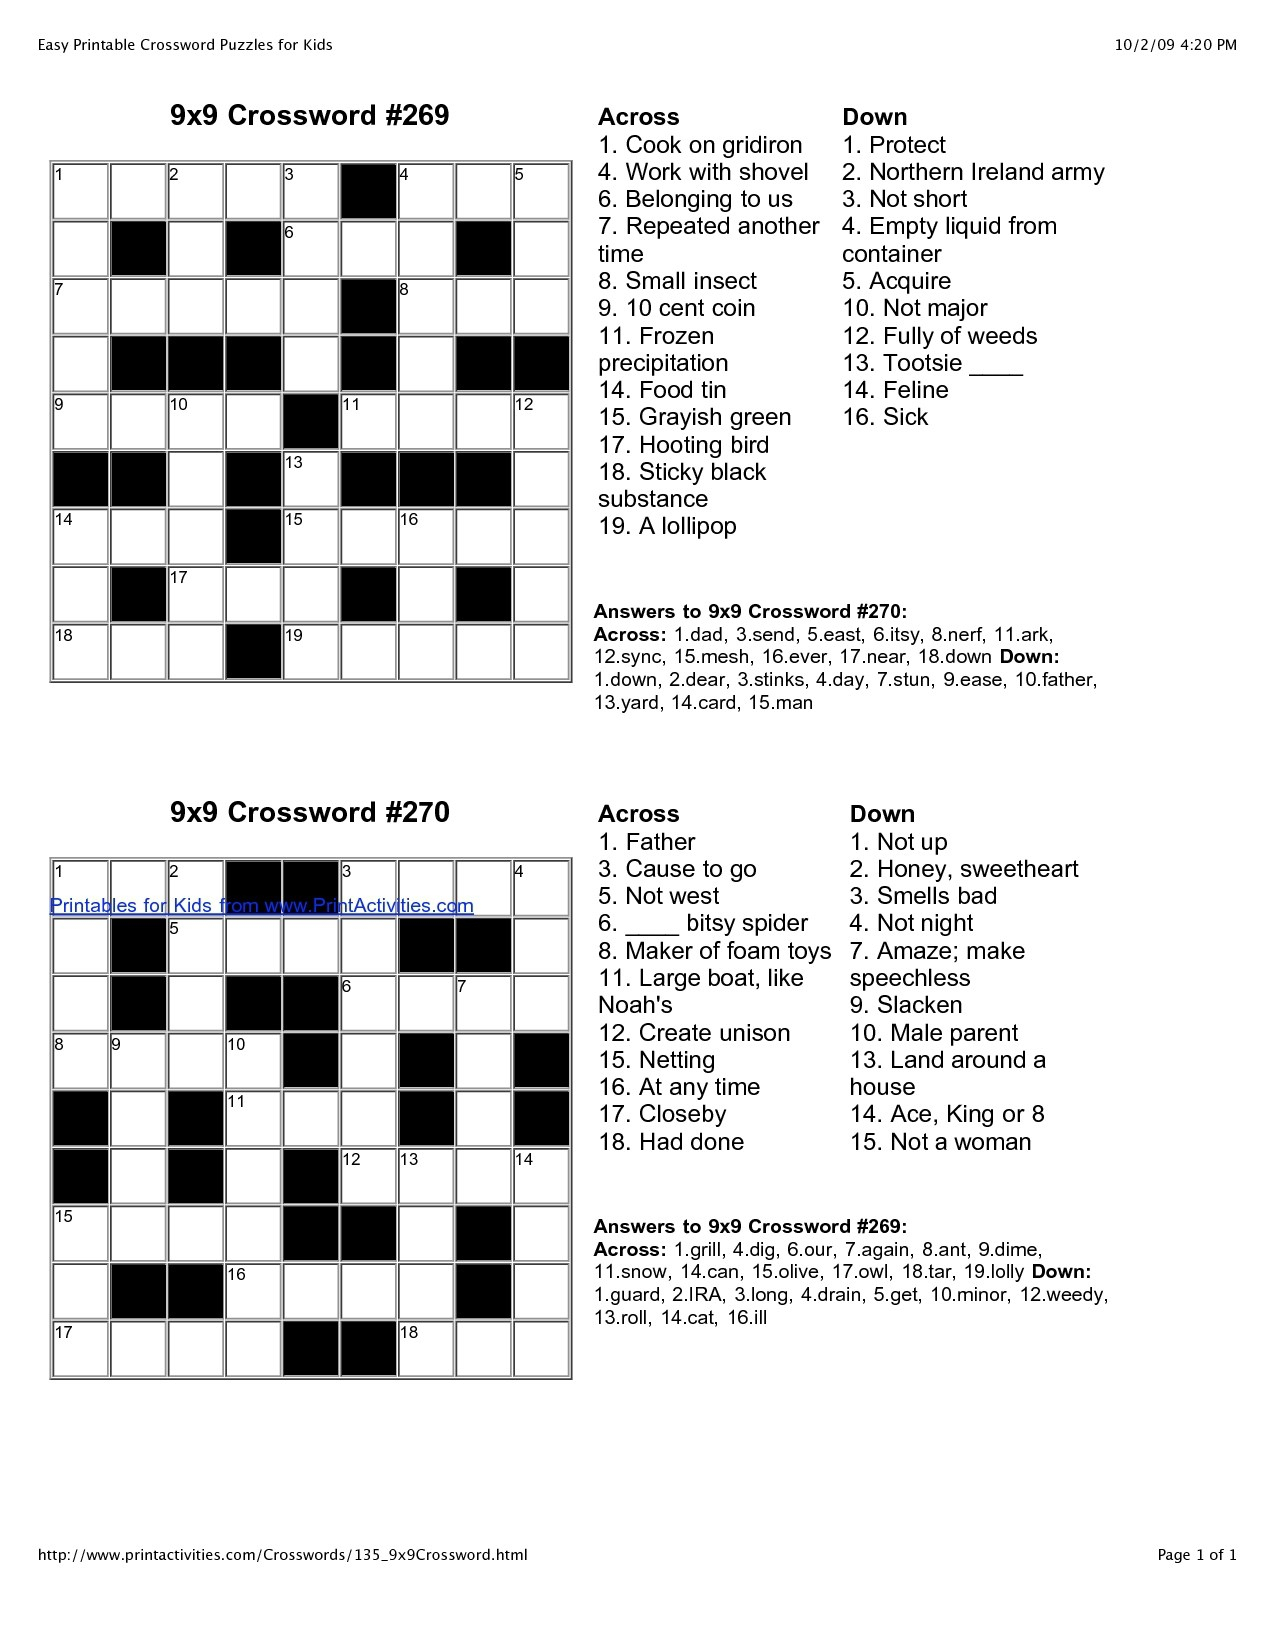 Free Easy Printableossword Puzzles With Answers Puzzle Maker Unique - Free Printable Crossword Puzzle Maker Download